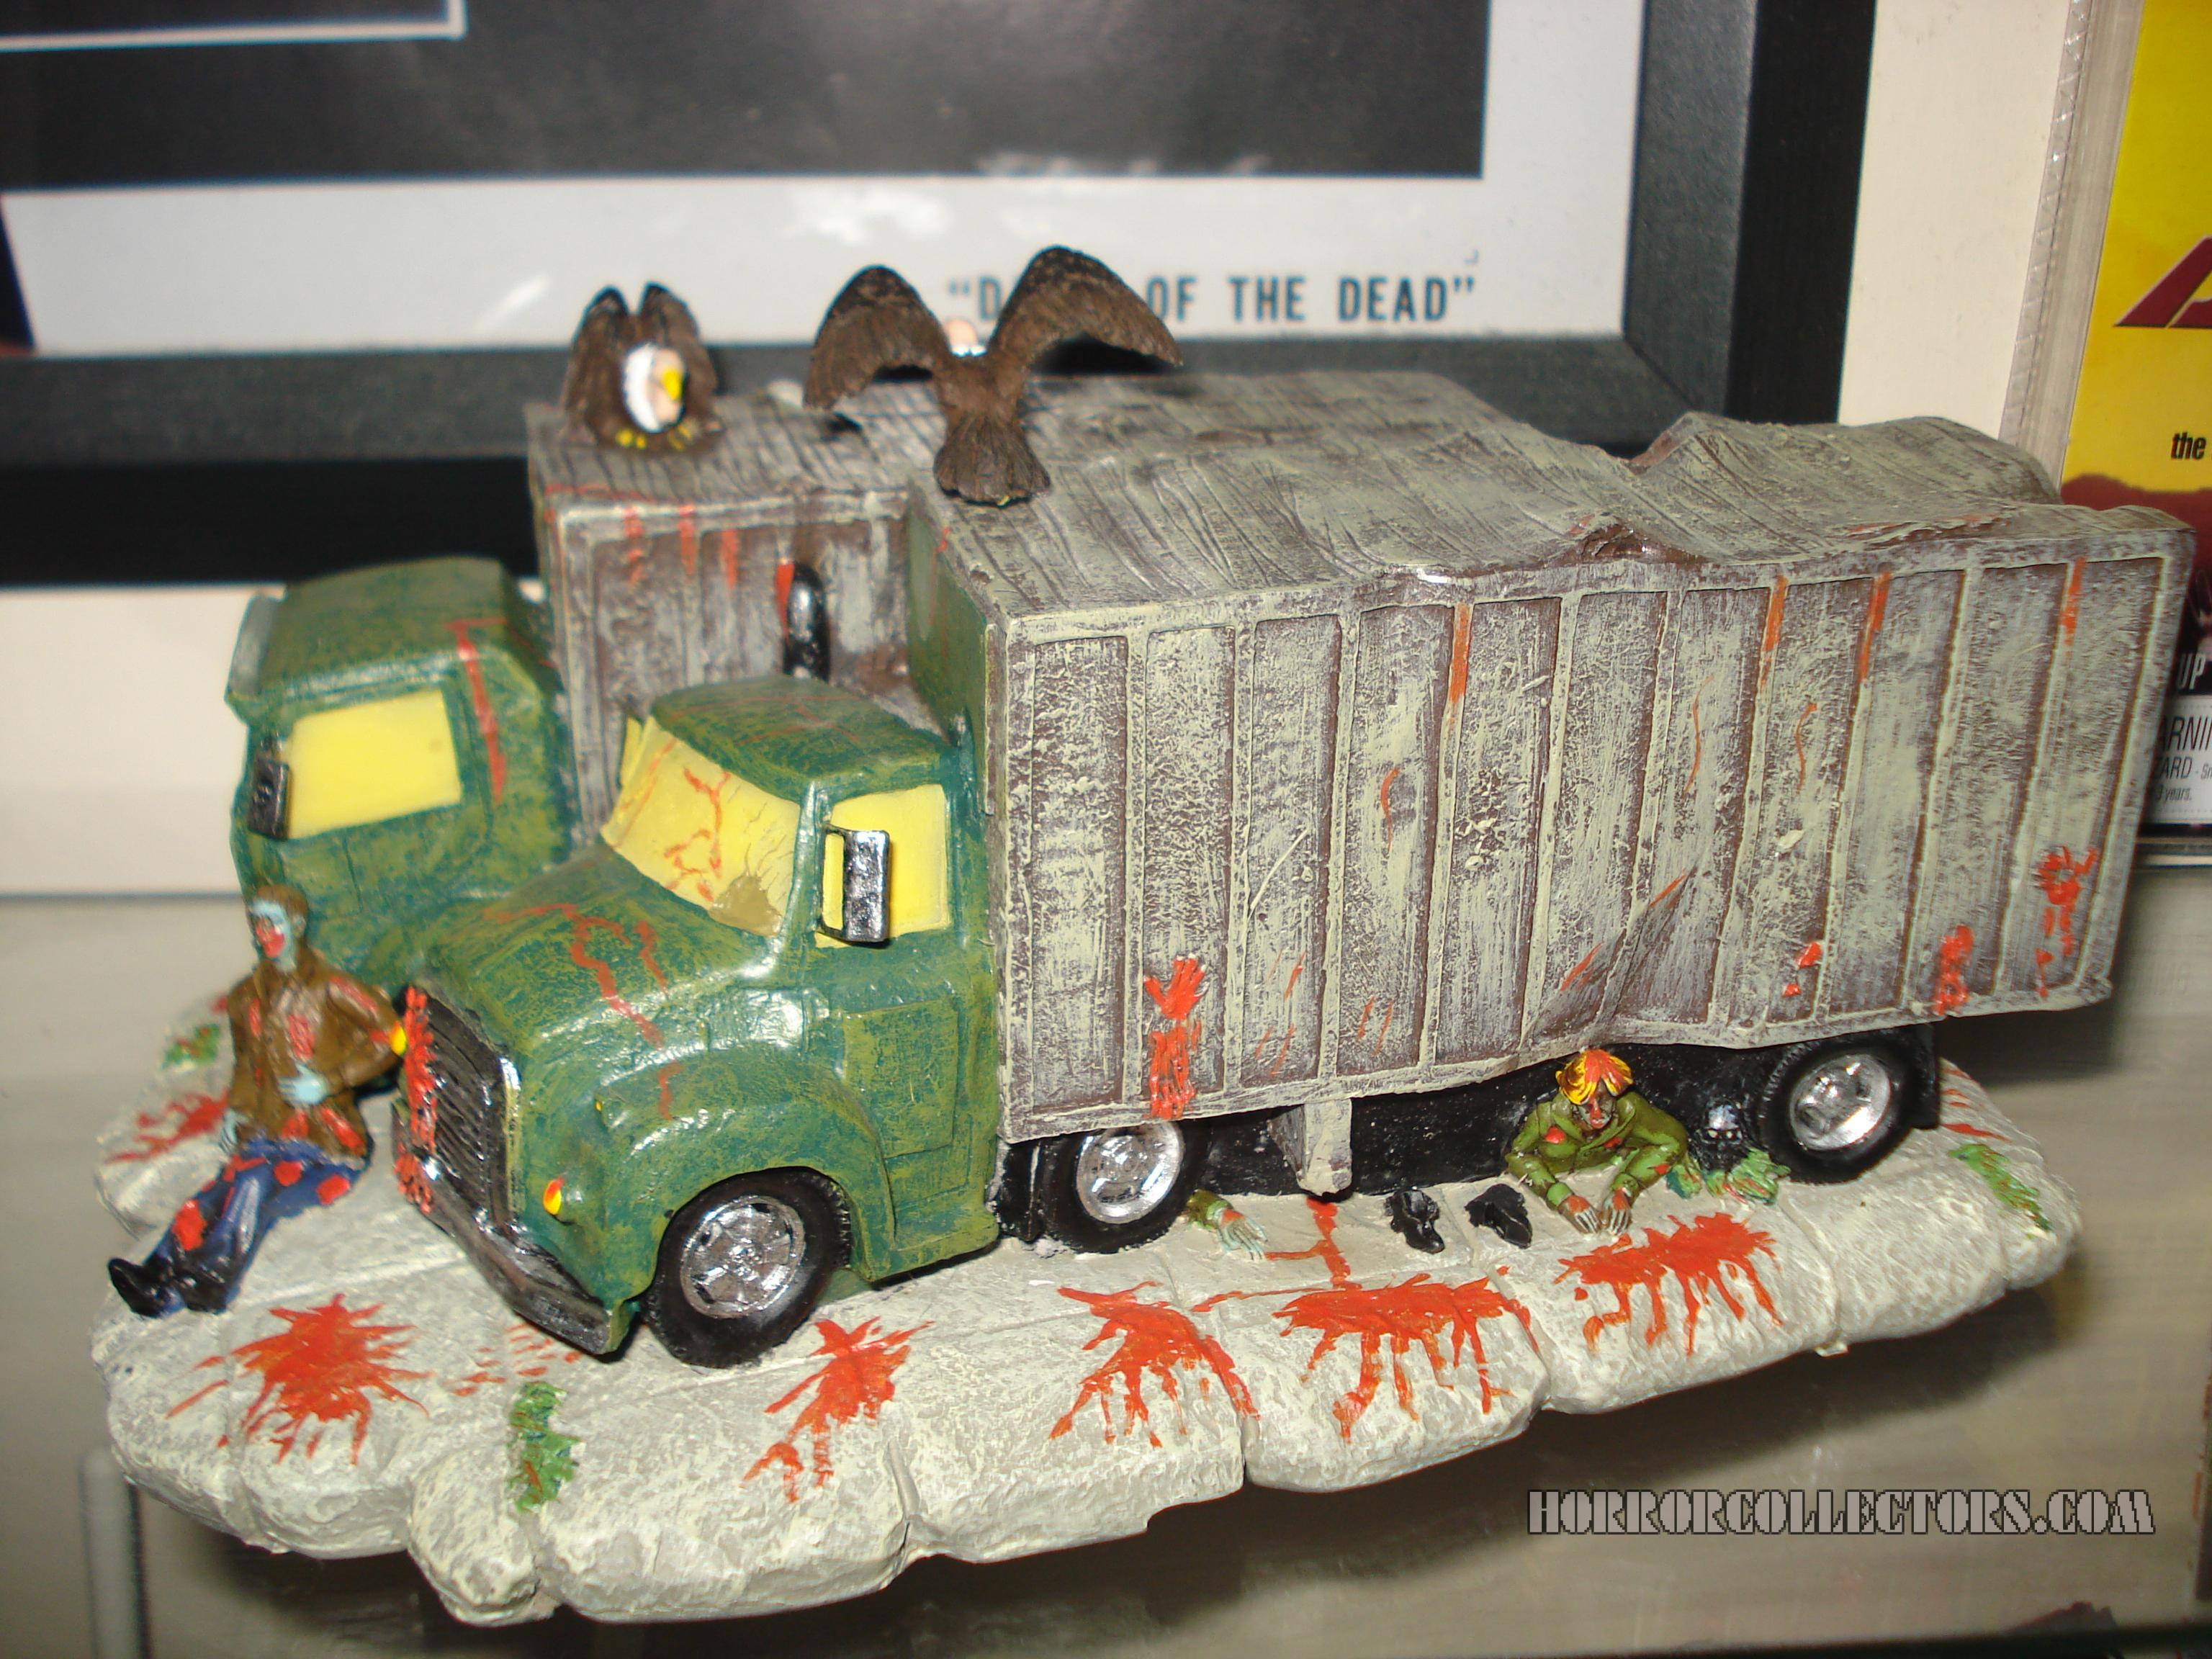 Dawn of the Dead Hawthorne Village of Horror Zombie Attack BP Trucks